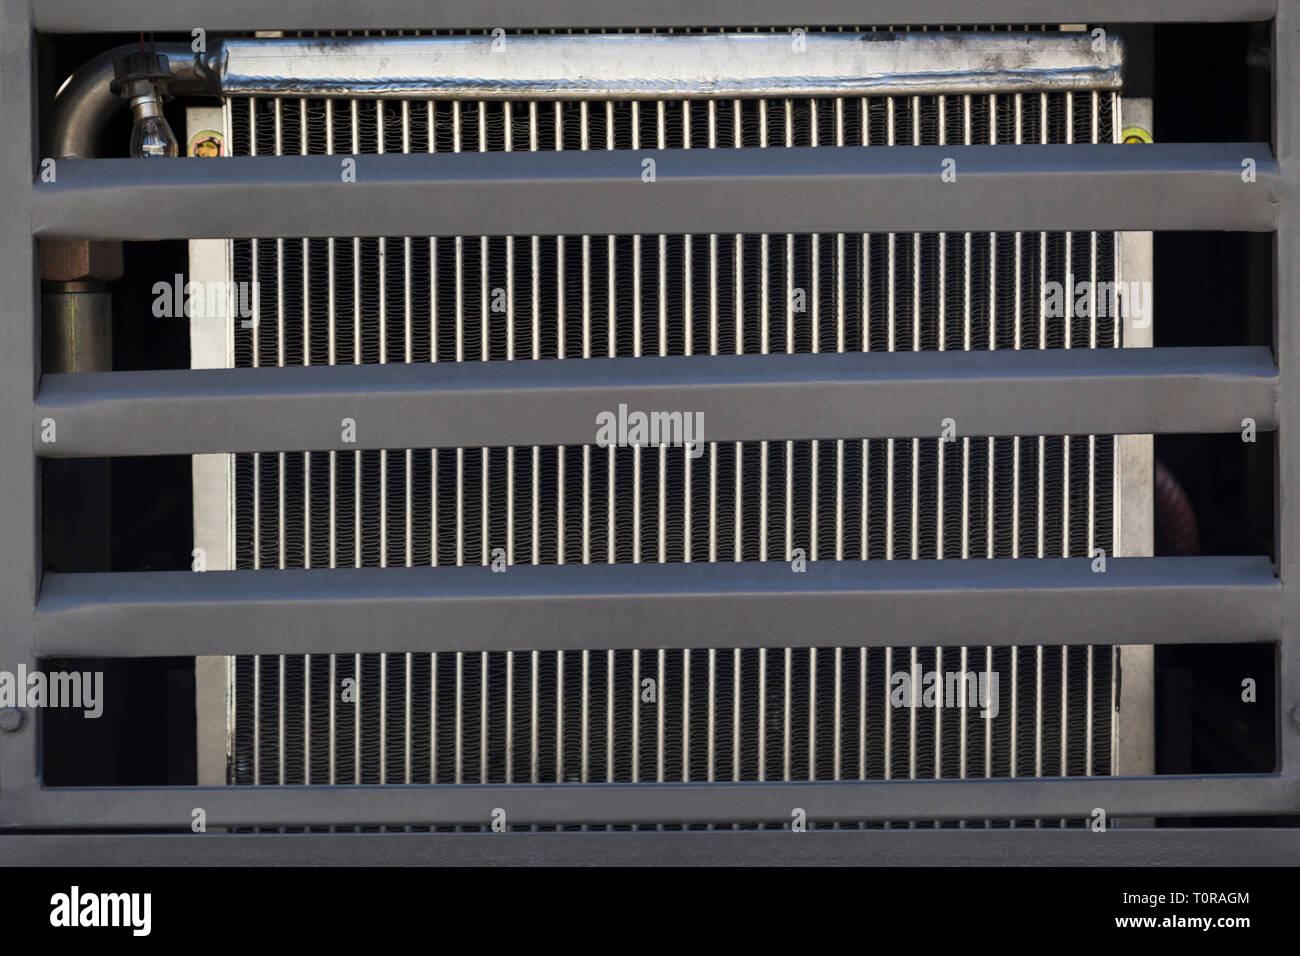 Radiator cooling the engine of the road machinery, stained with soot, closed with a gray metal protective grille, close-up - Stock Image